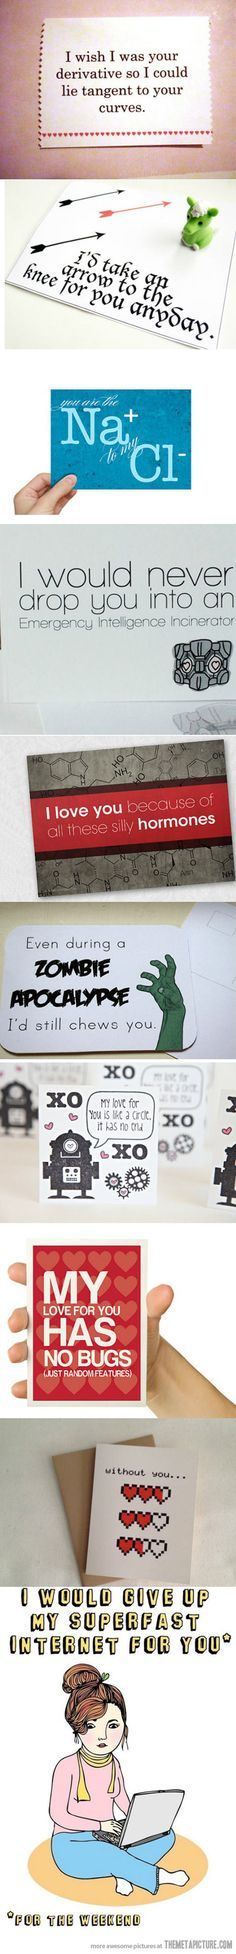 Geeky Valentine's Day Cards- I'm not a fan of Valentine's Day, but these are great :)